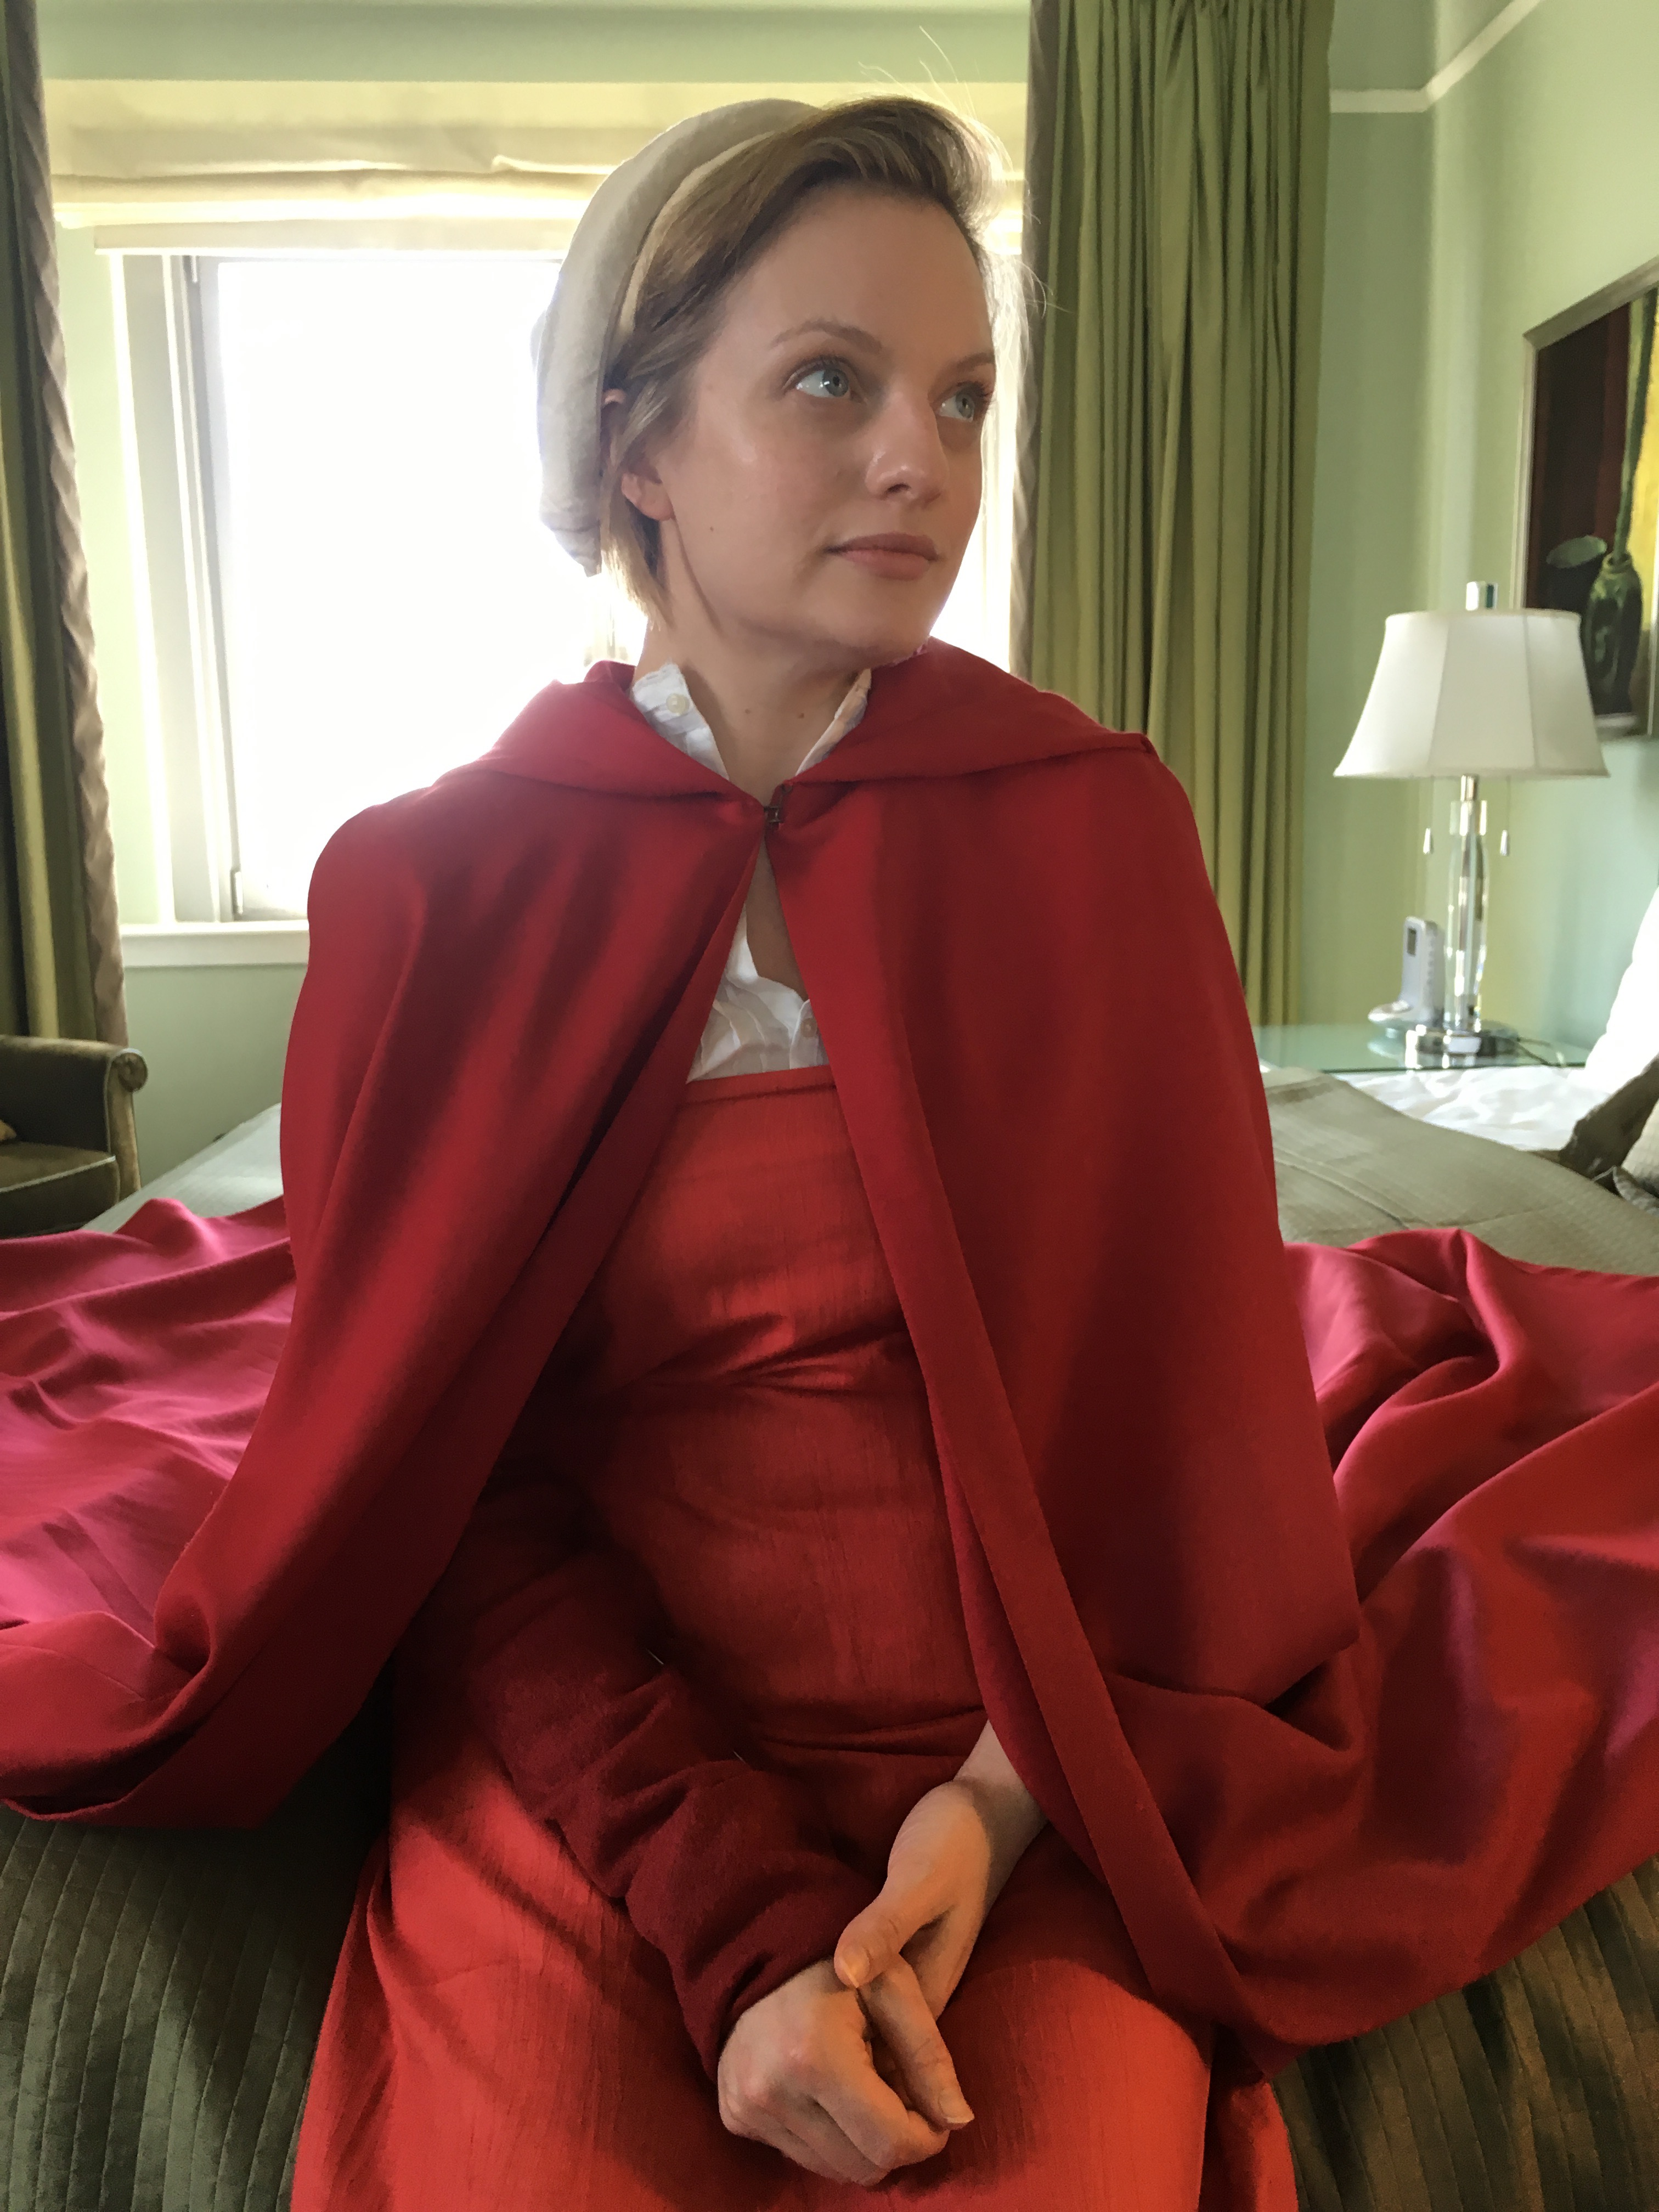 """Actress Elizabeth Moss wears the red dress and white hat from """"The Handmaid's Tale"""" TV show."""